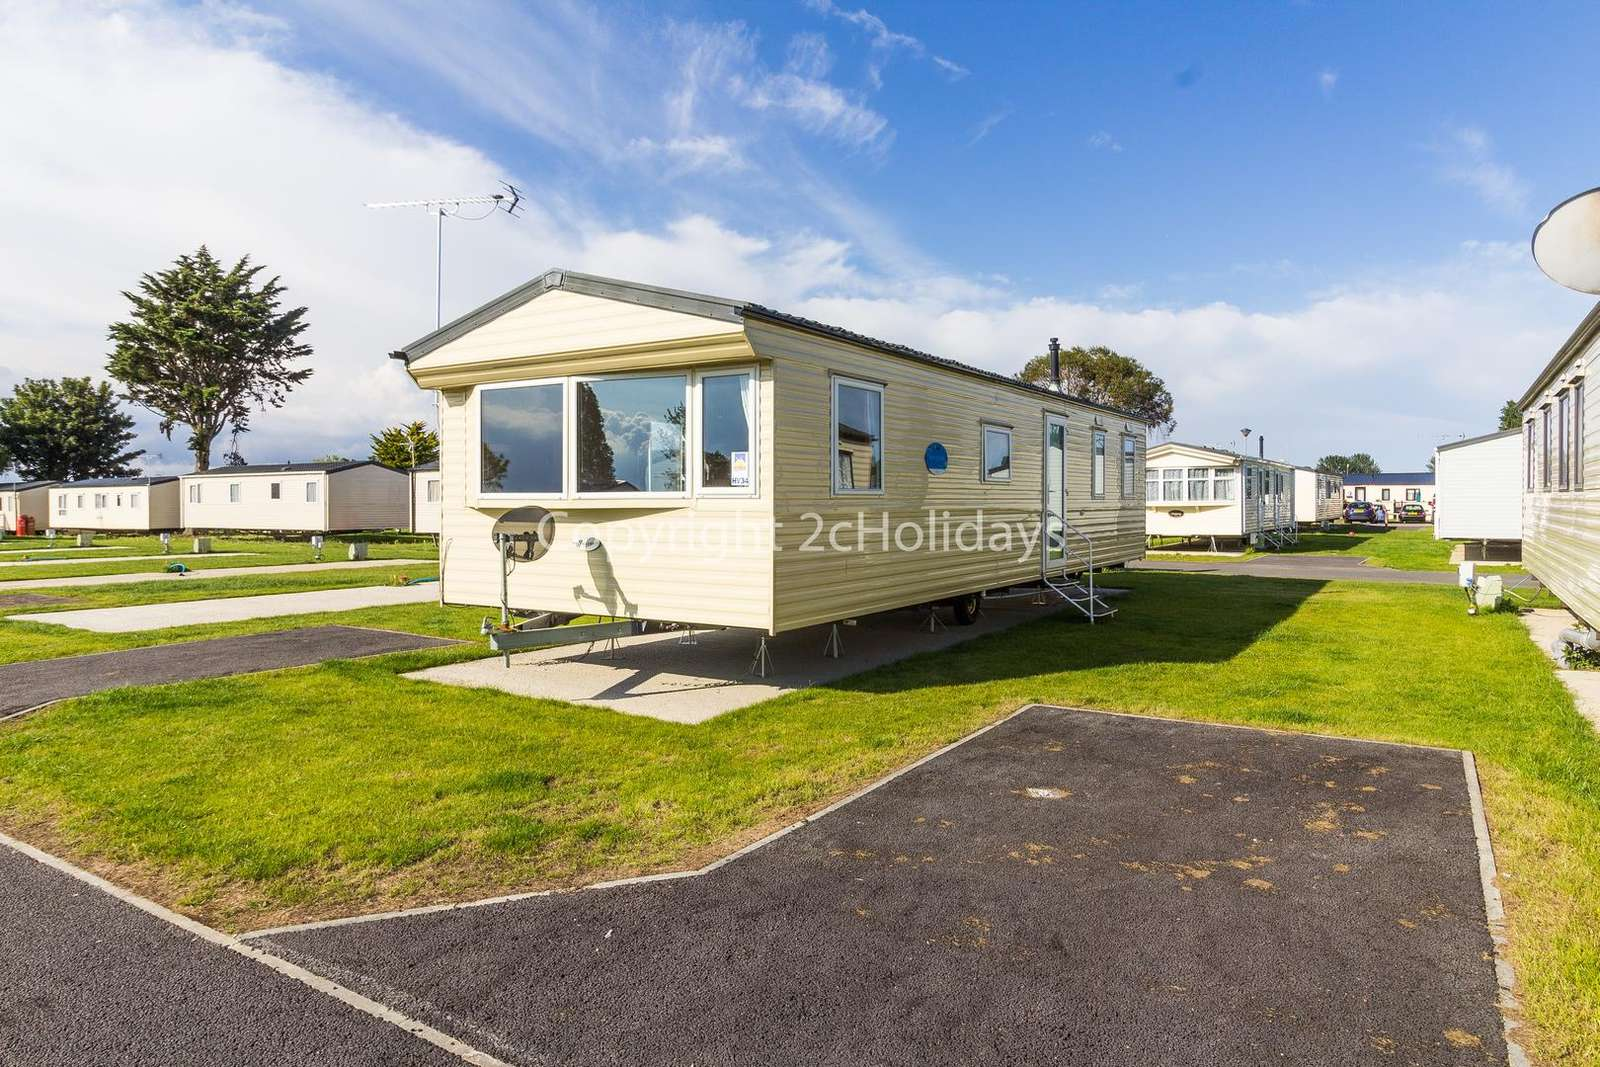 Lovely caravan on a fantastic holiday park with great amenities